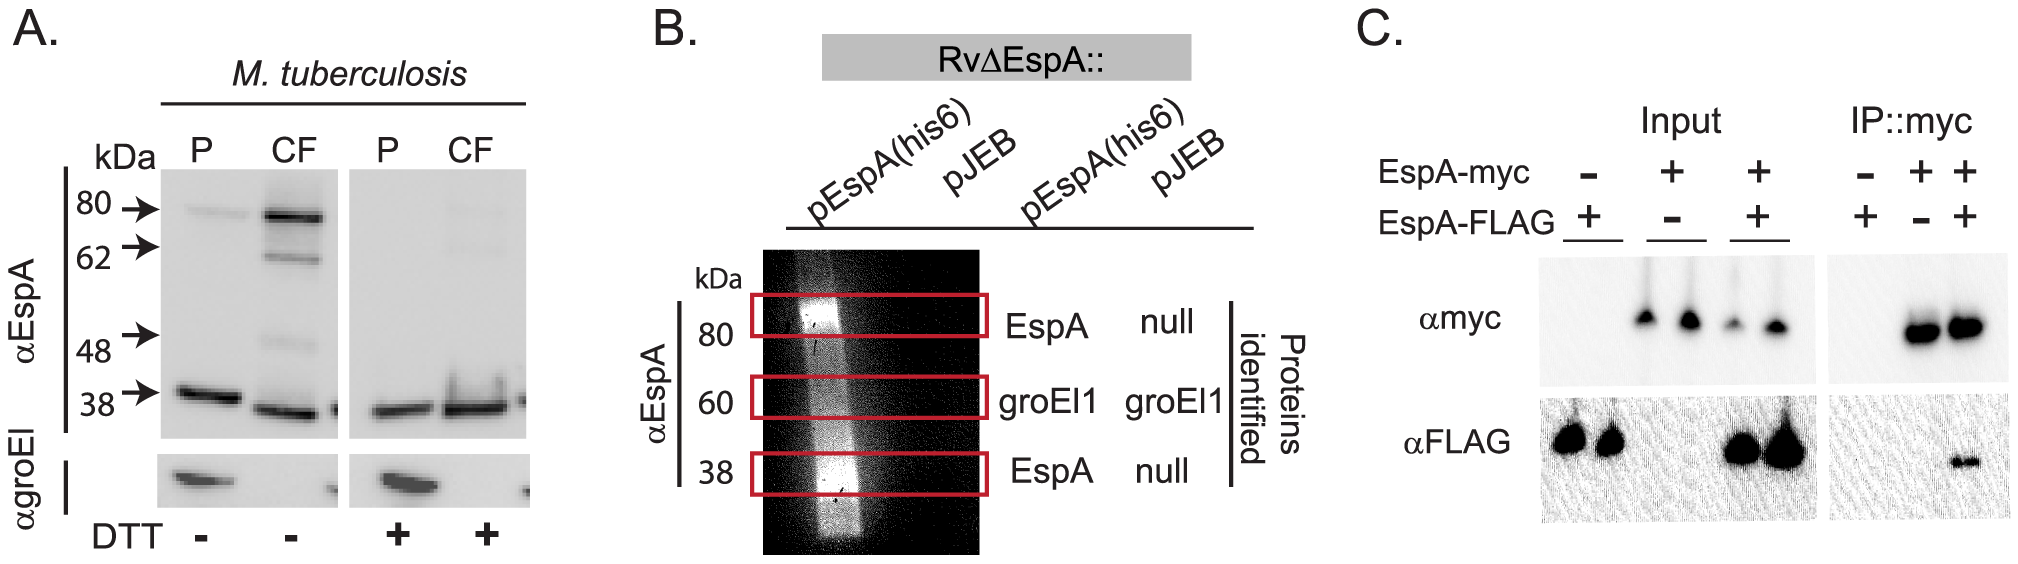 EspA forms disulfide dependent homodimers in wildtype <i>Mtb</i>.